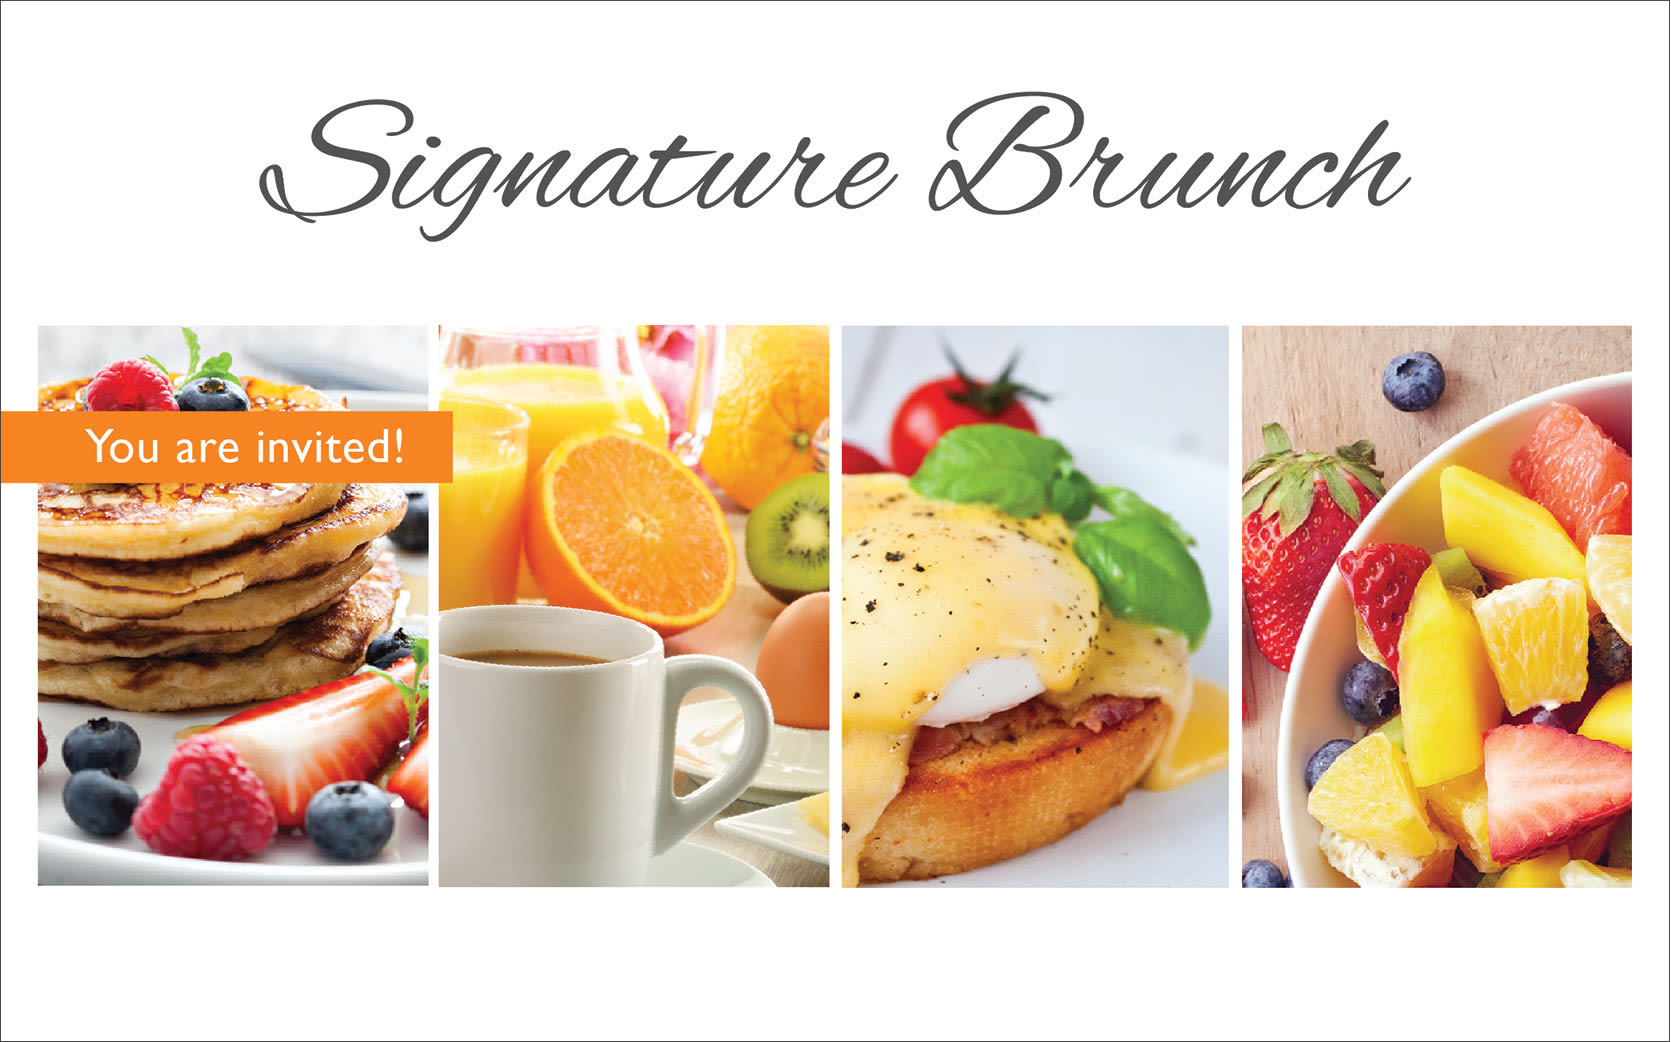 Signature brunch at the senior living community in Loveland